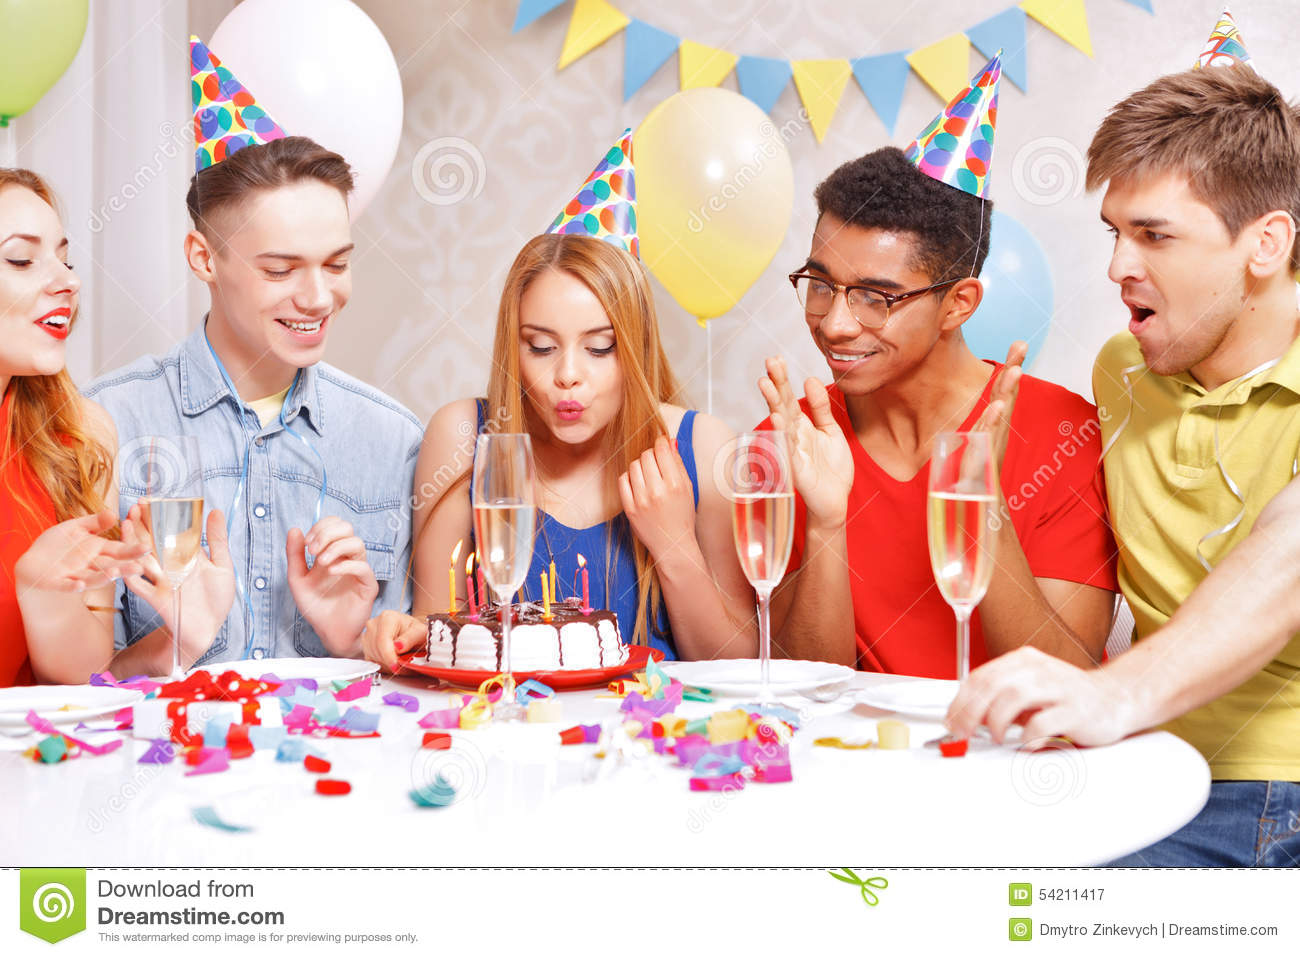 Young people celebrating a birthday sitting at the